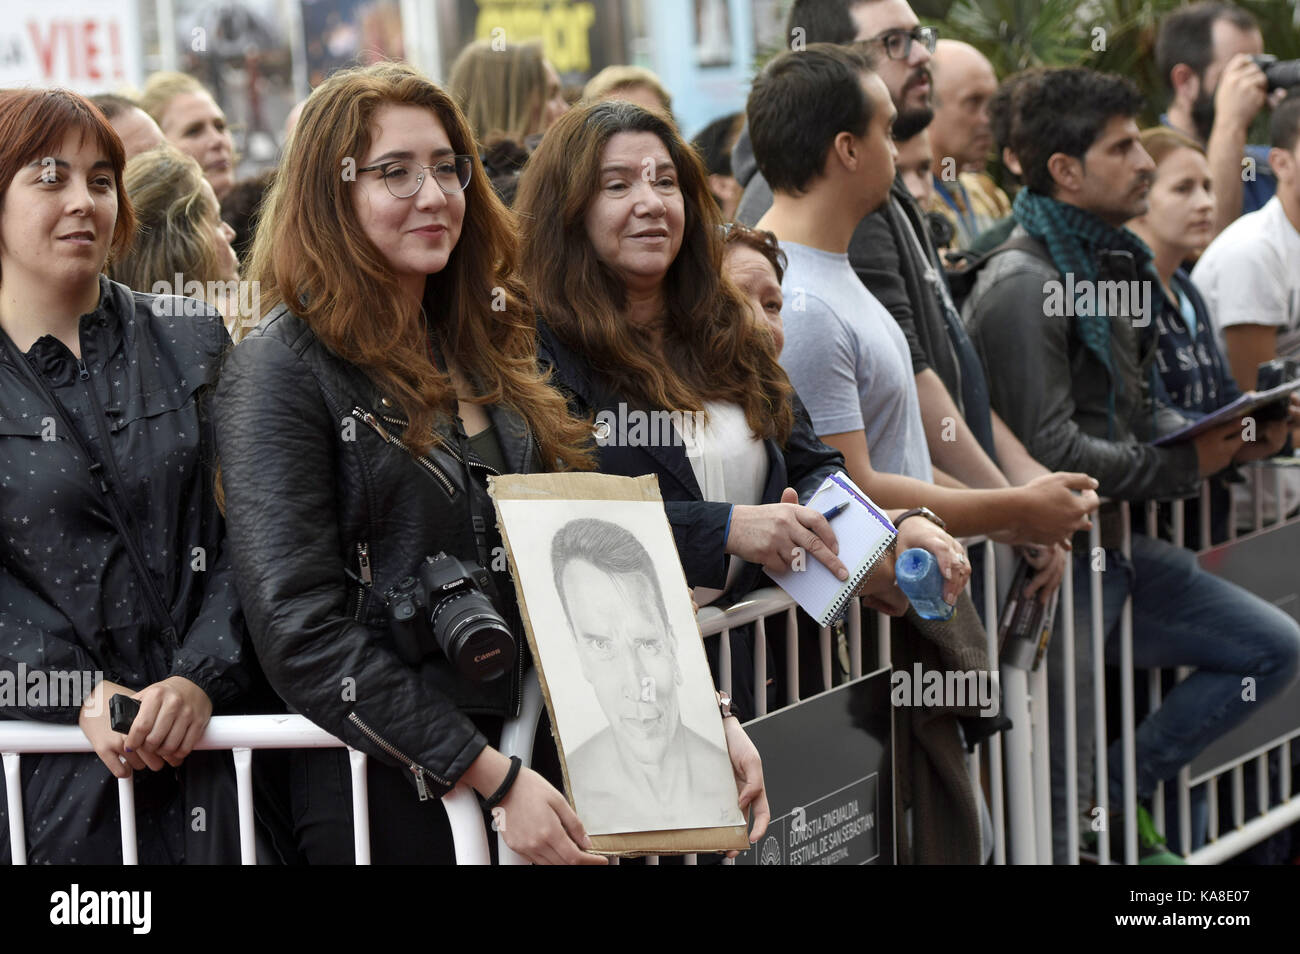 San Sebastian, Spain. 25th Sep, 2017. Fans at the 'Wonder Of The Sea 3D' premiere at the Victoria Eugenia Teather Stock Photo